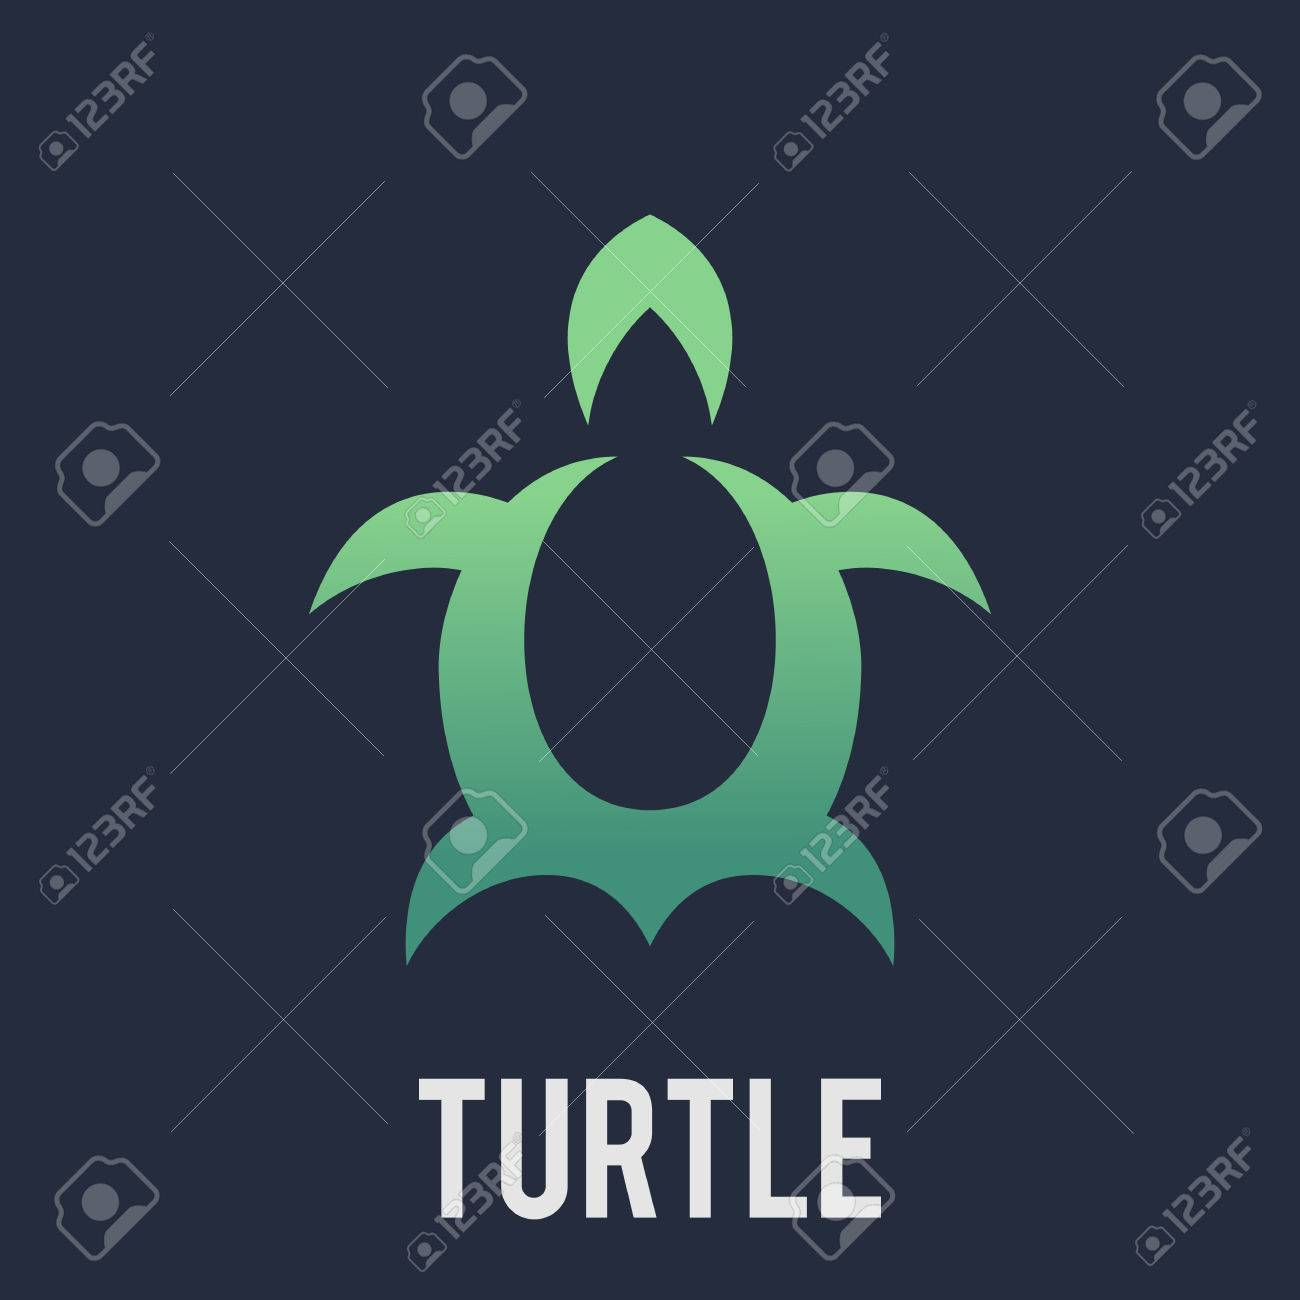 Abstract turtle logo template letter u logo template royalty free abstract turtle logo template letter u logo template stock vector 51521573 biocorpaavc